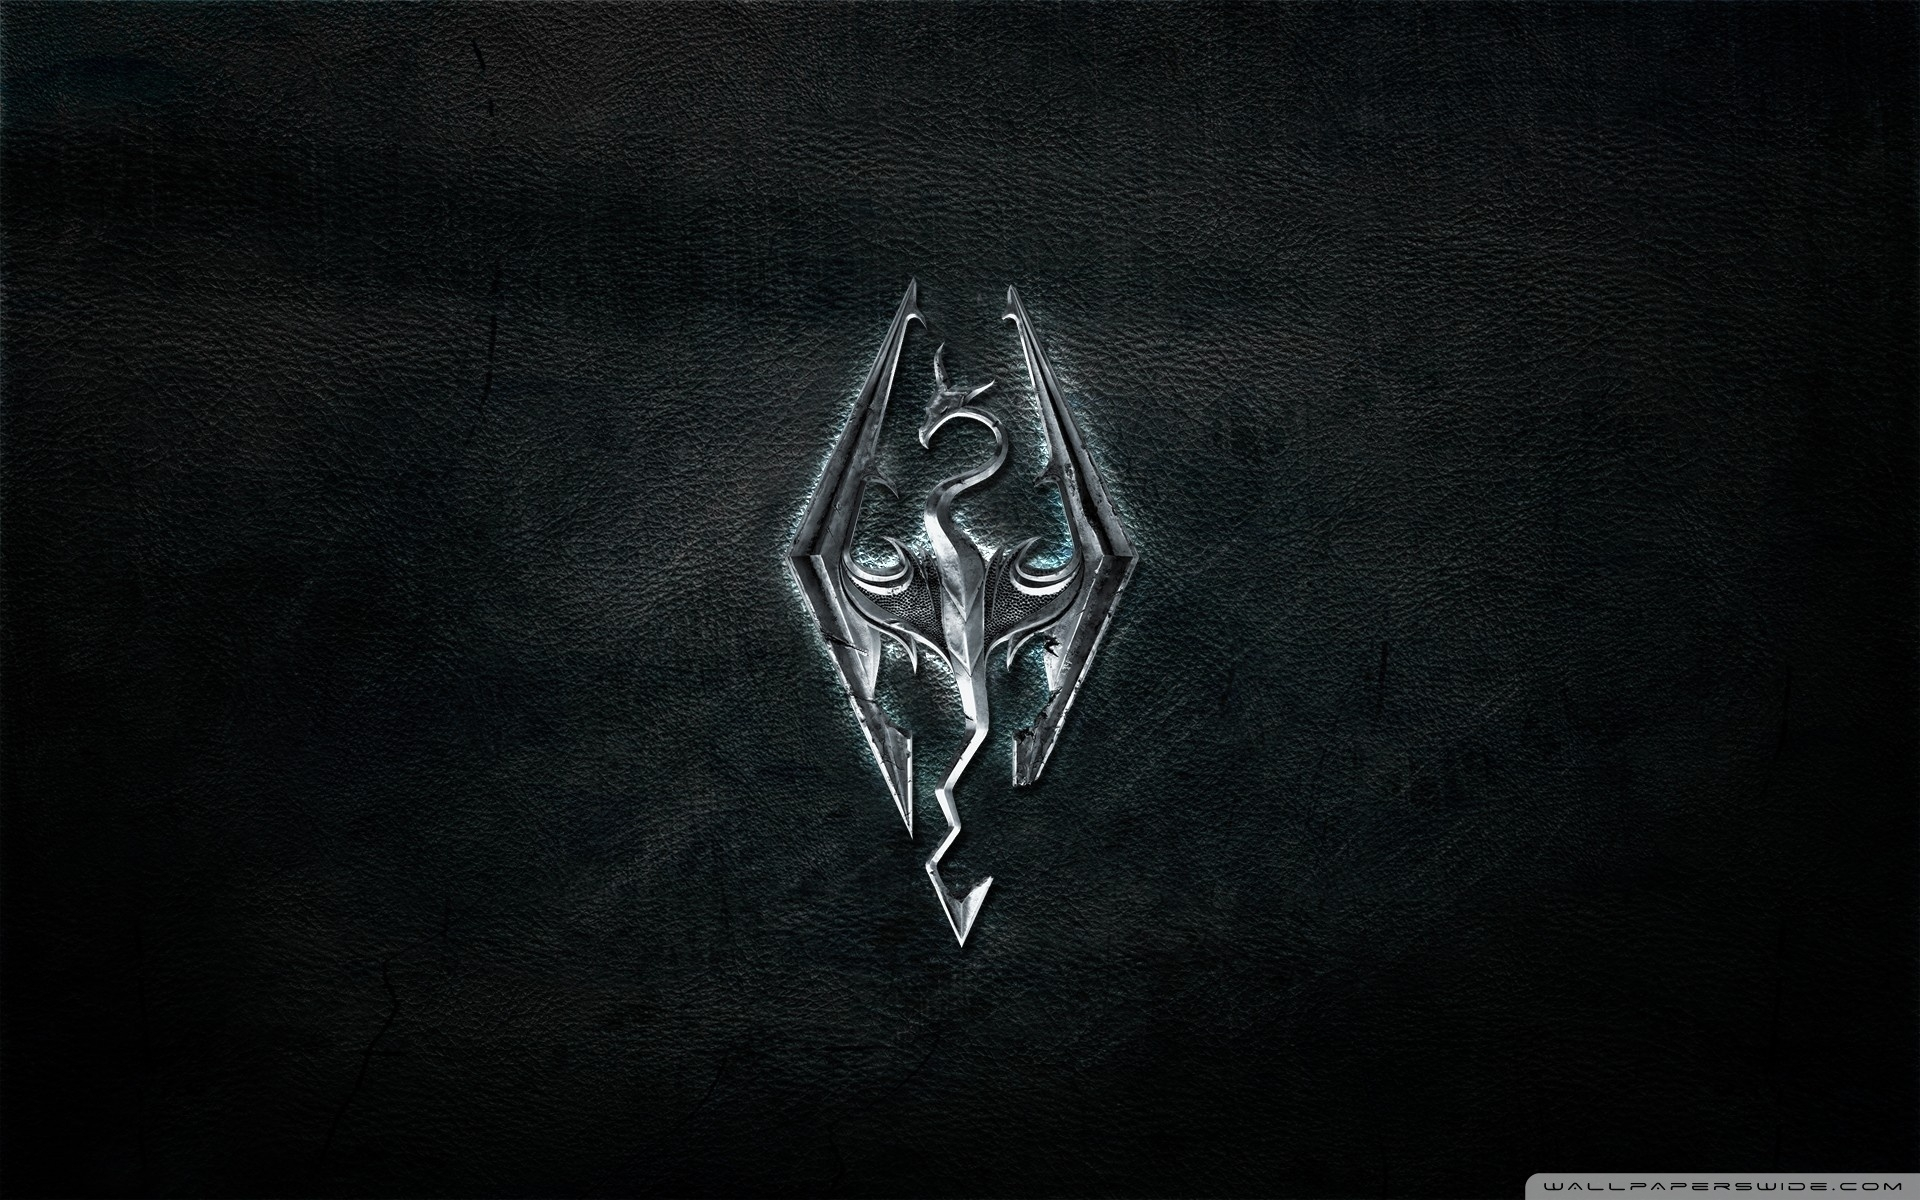 skyrim logo ❤ 4k hd desktop wallpaper for 4k ultra hd tv • tablet